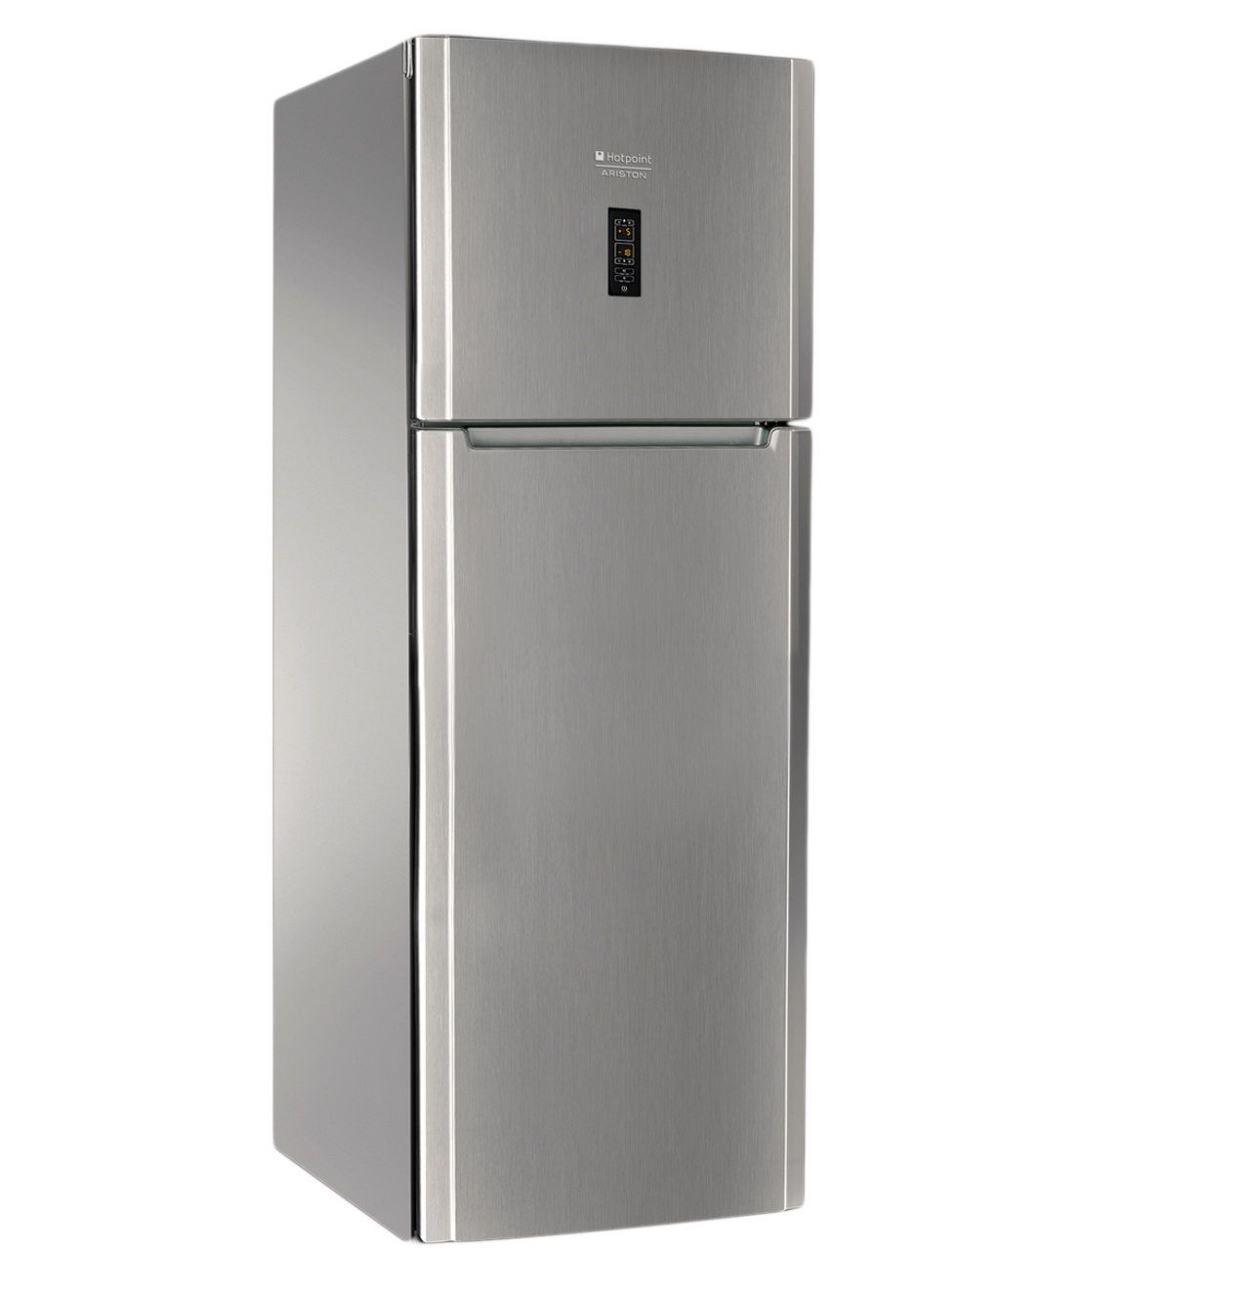 emag-electrocasnice-hotpoint-3